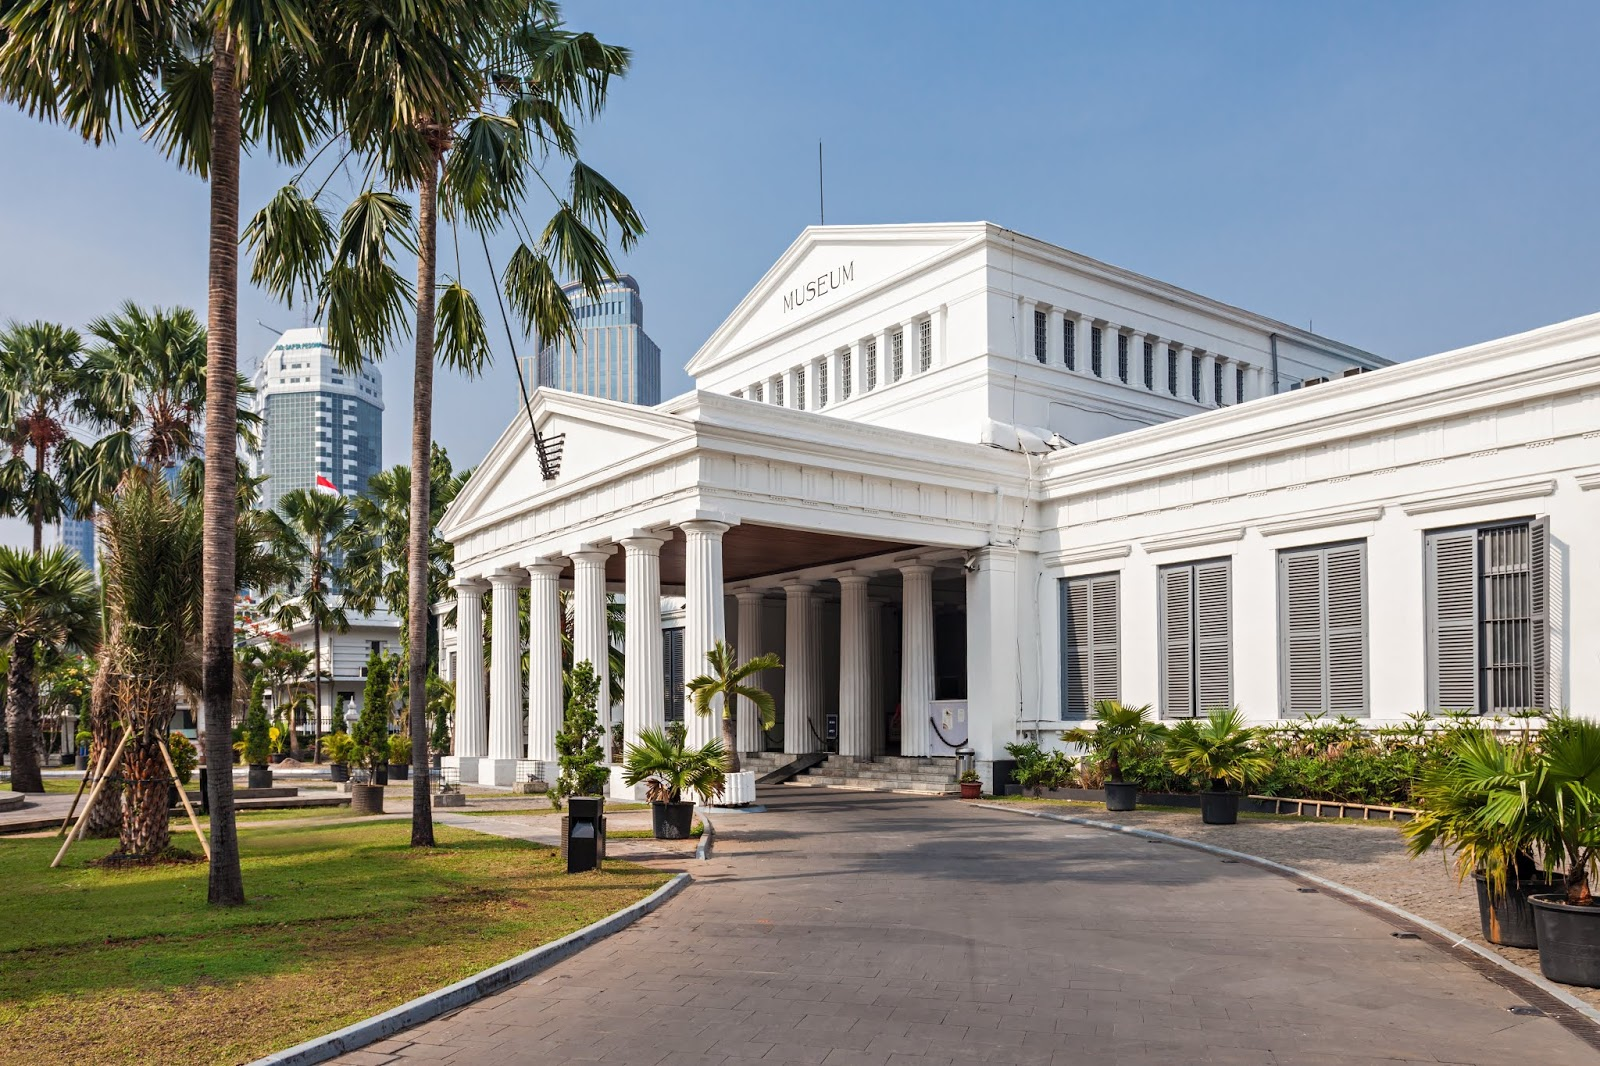 Most Popular Museums In Indonesia